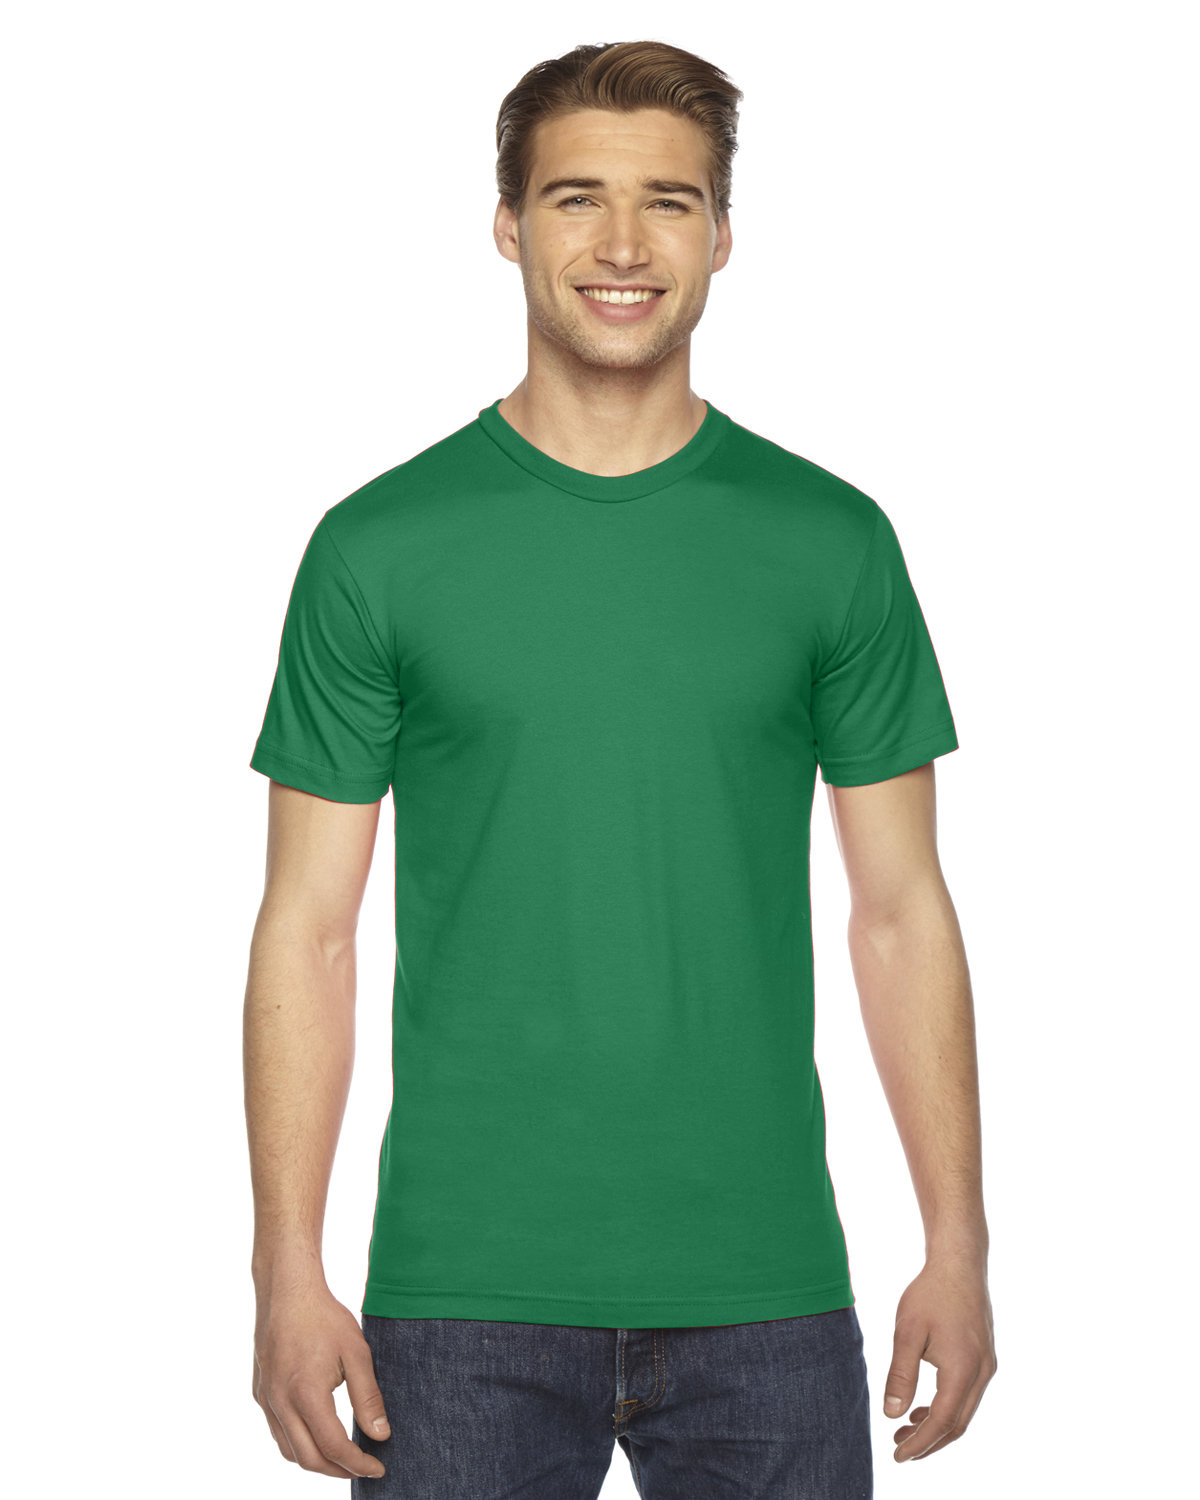 American Apparel Unisex Fine Jersey USA Made T-Shirt KELLY GREEN